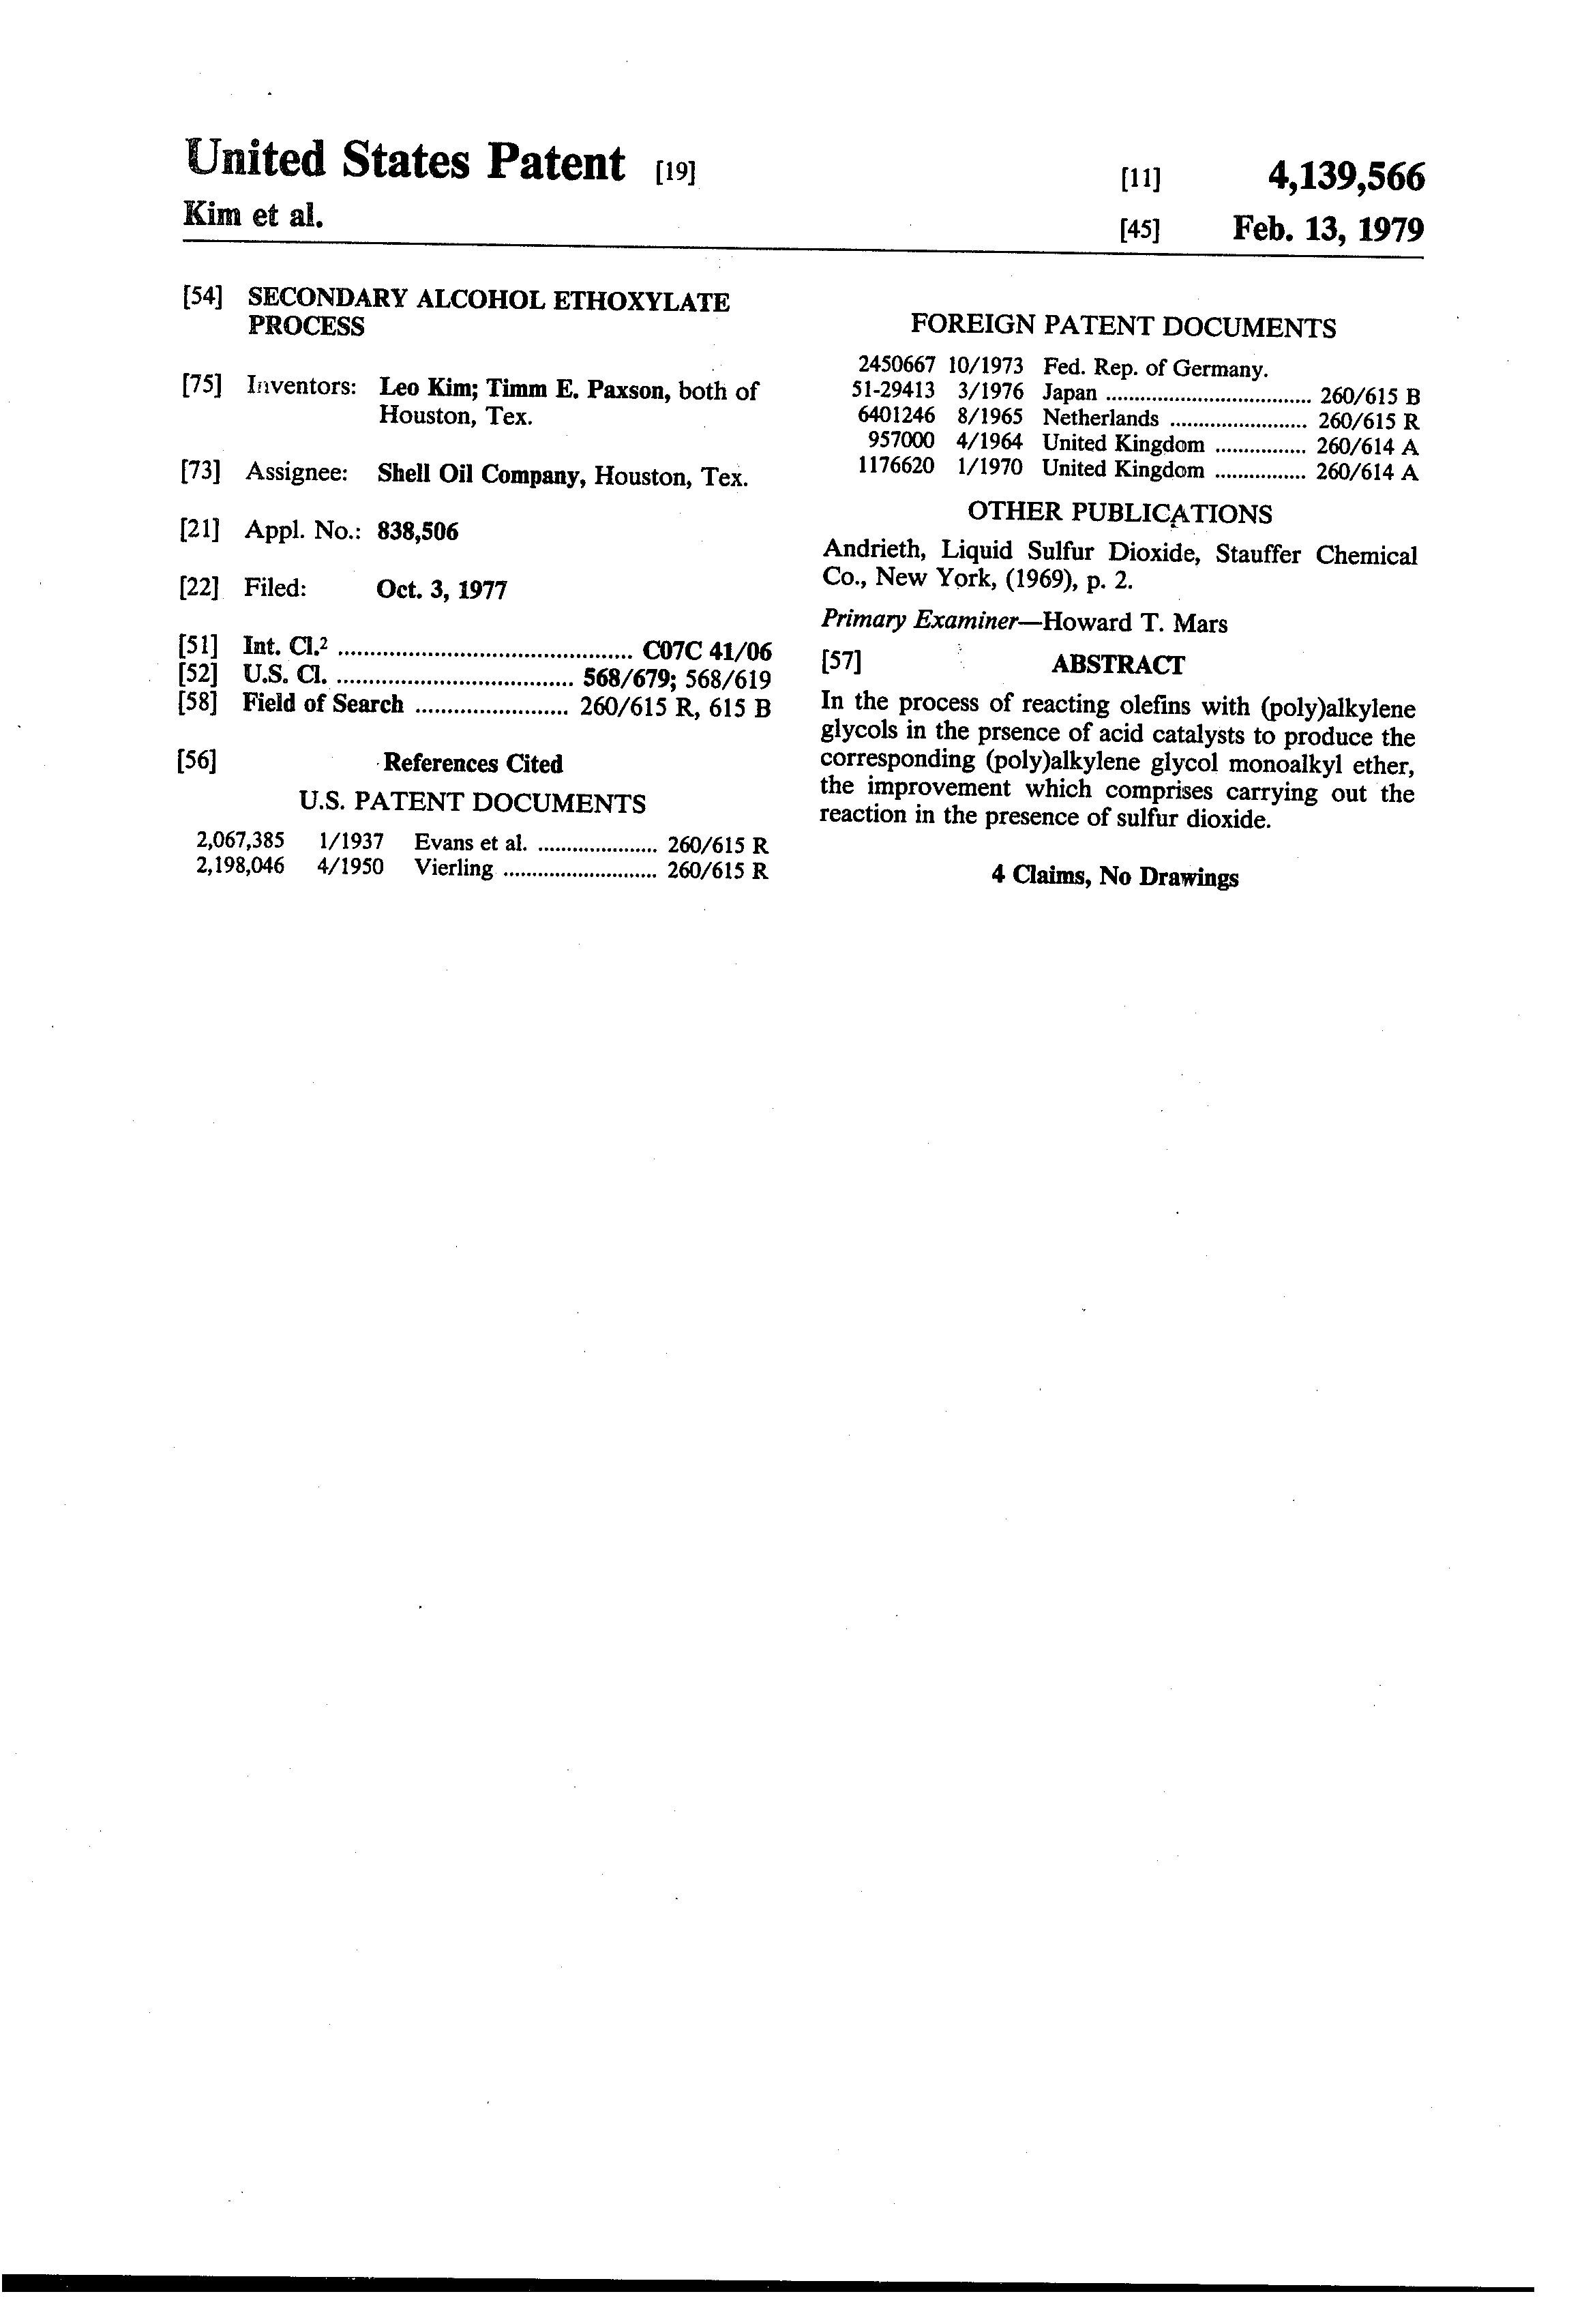 US 4139566 A - Secondary Alcohol Ethoxylate Process - The Lens